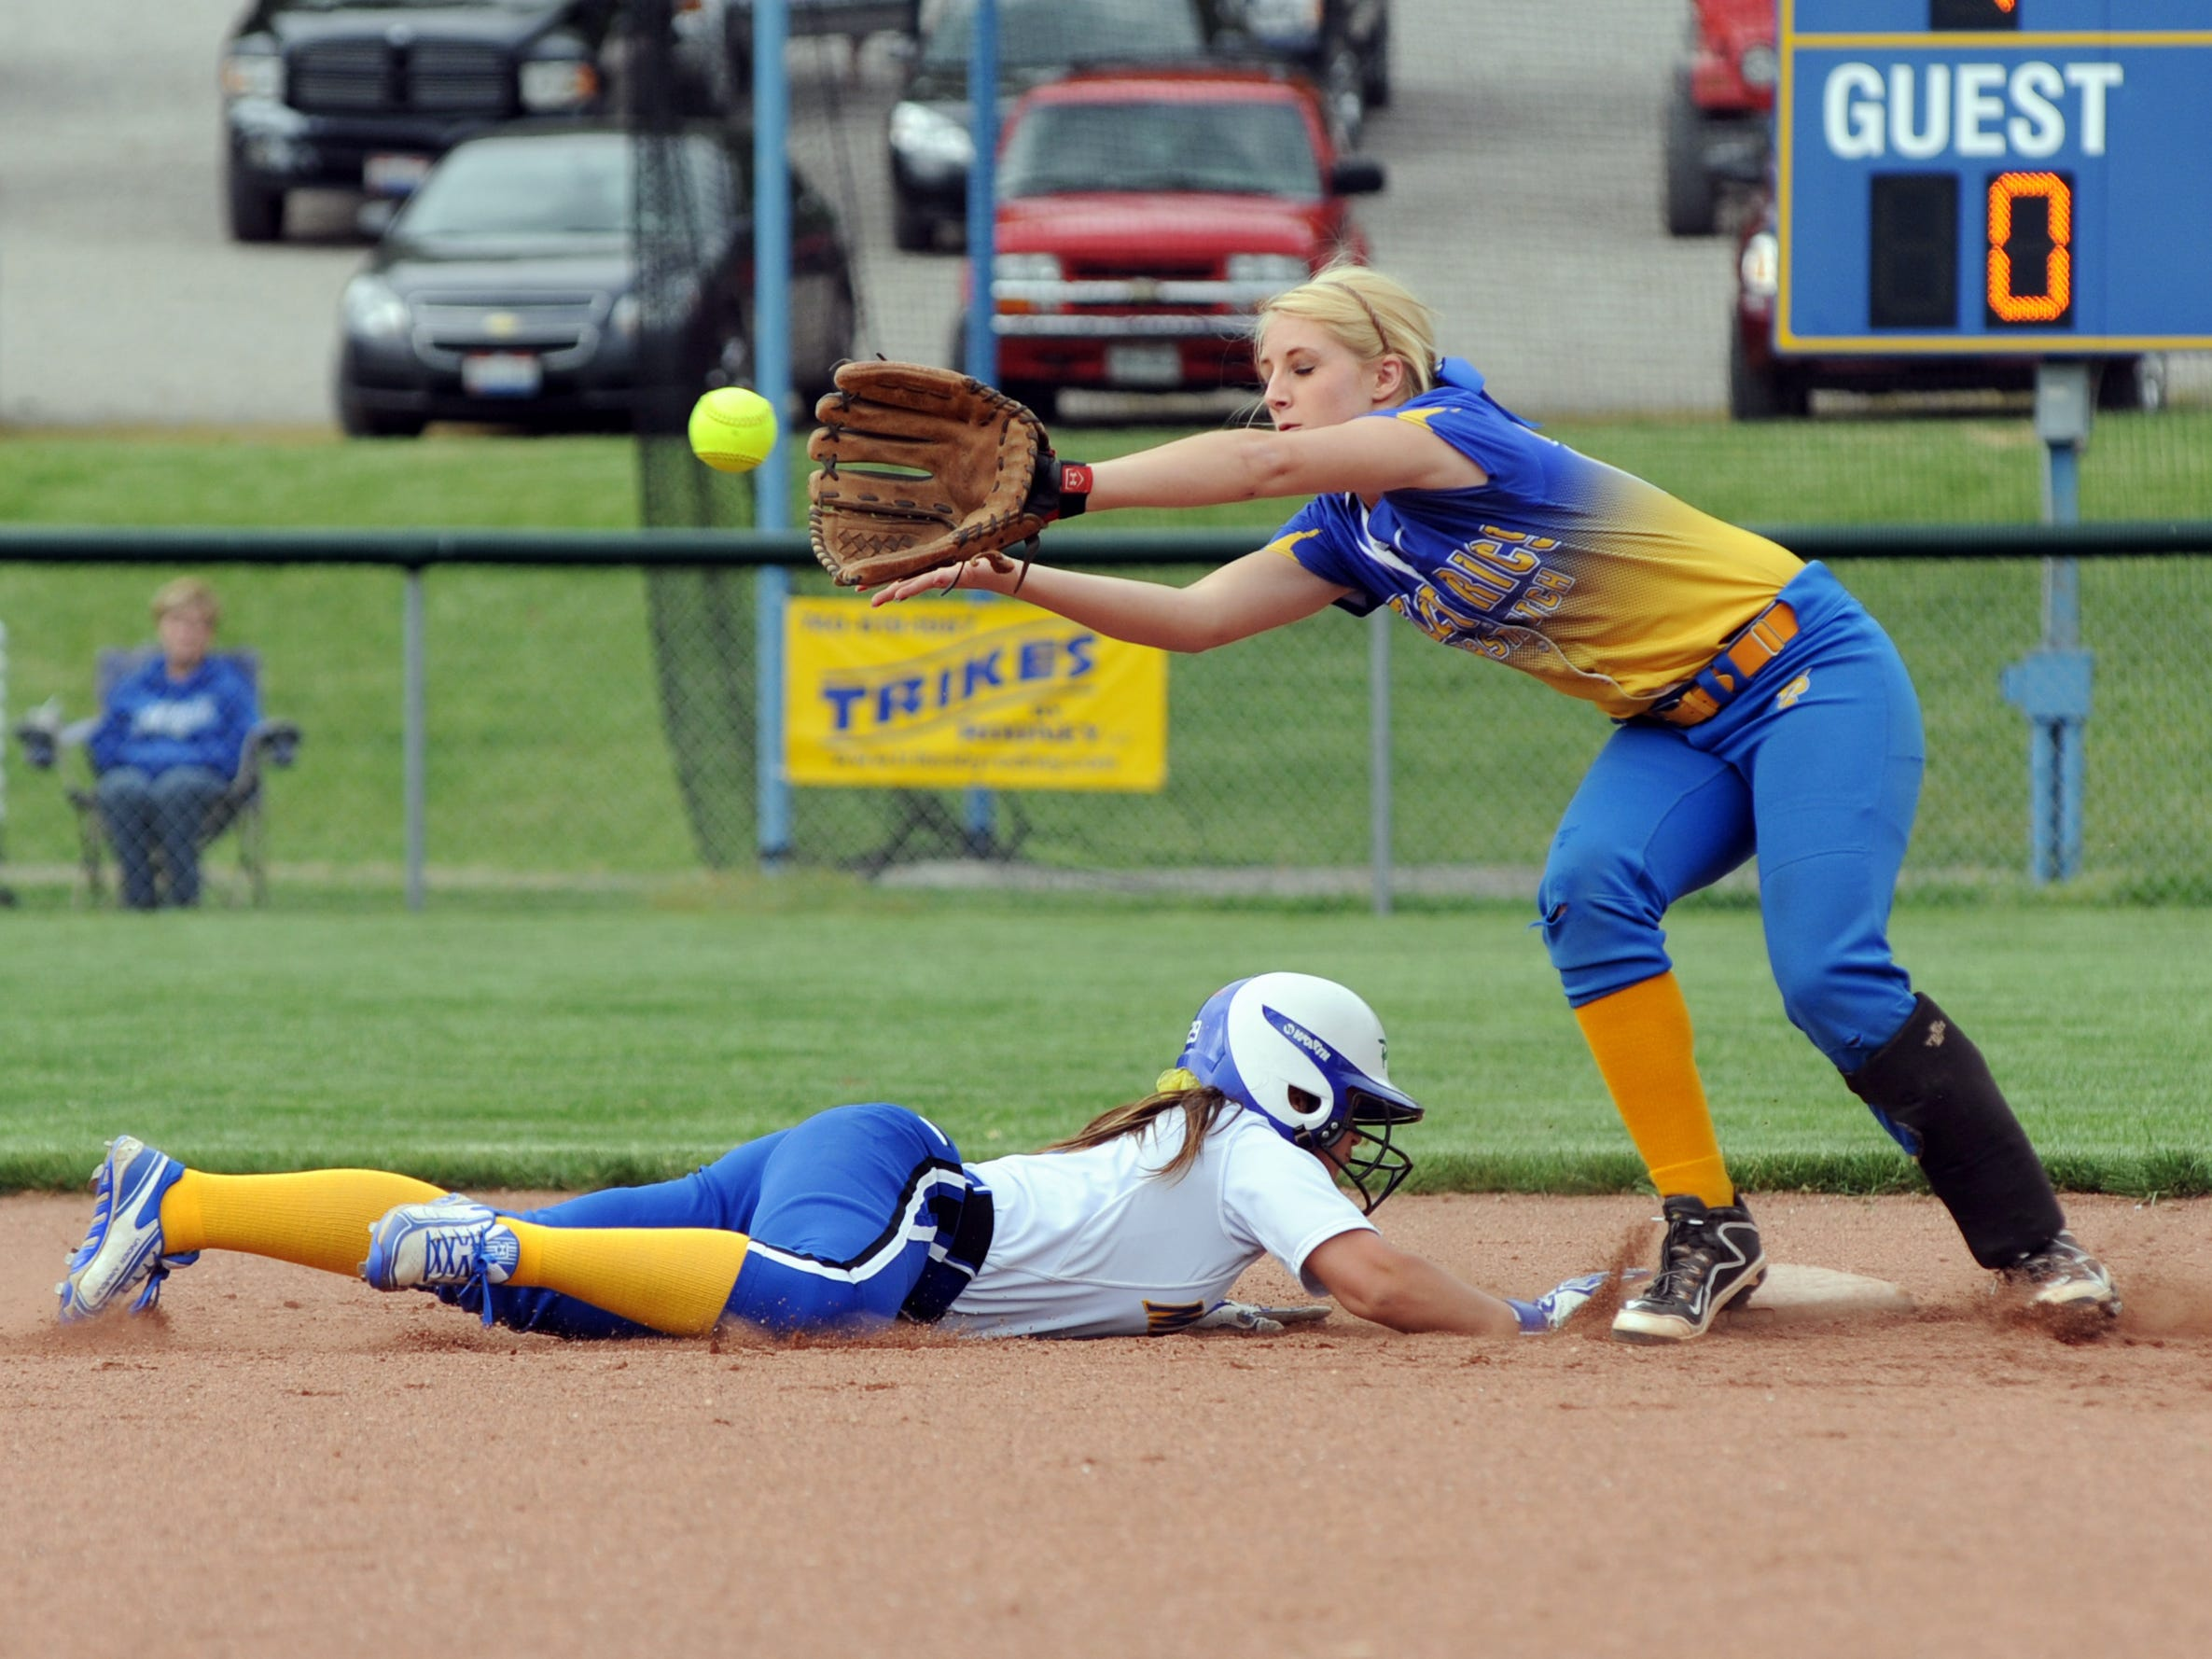 Maysville's Caitlynn Lingle slides safely back into second base past Philo's Mallory Hill in the third inning of a sectional tournament game Wednesday in Duncan Falls. Maysville defeated Philo, 8-3, advancing to the sectional finals.